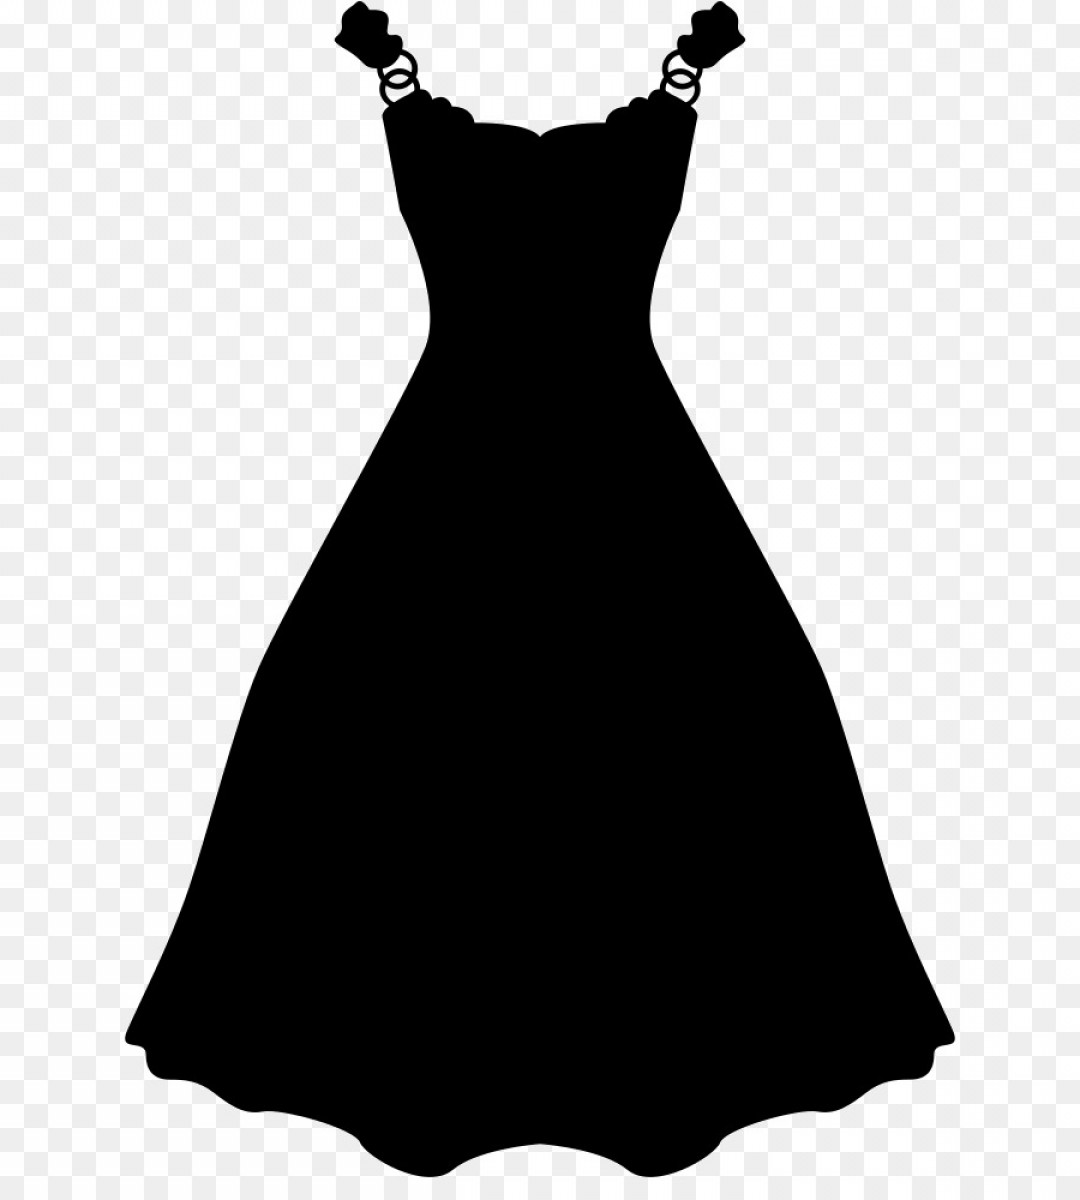 Vector Images Of Black And White Dresses: Png Wedding Dress Little Black Dress Evening Gown Clot